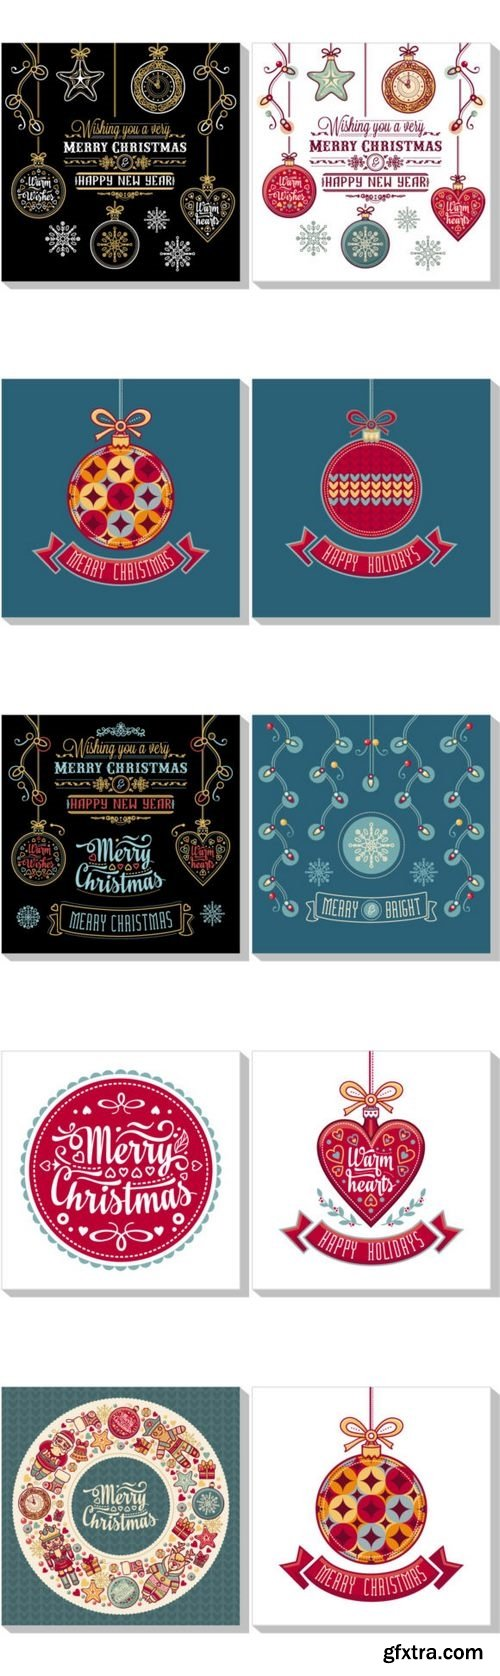 Stock Vector - Christmas Greeting Card and Template